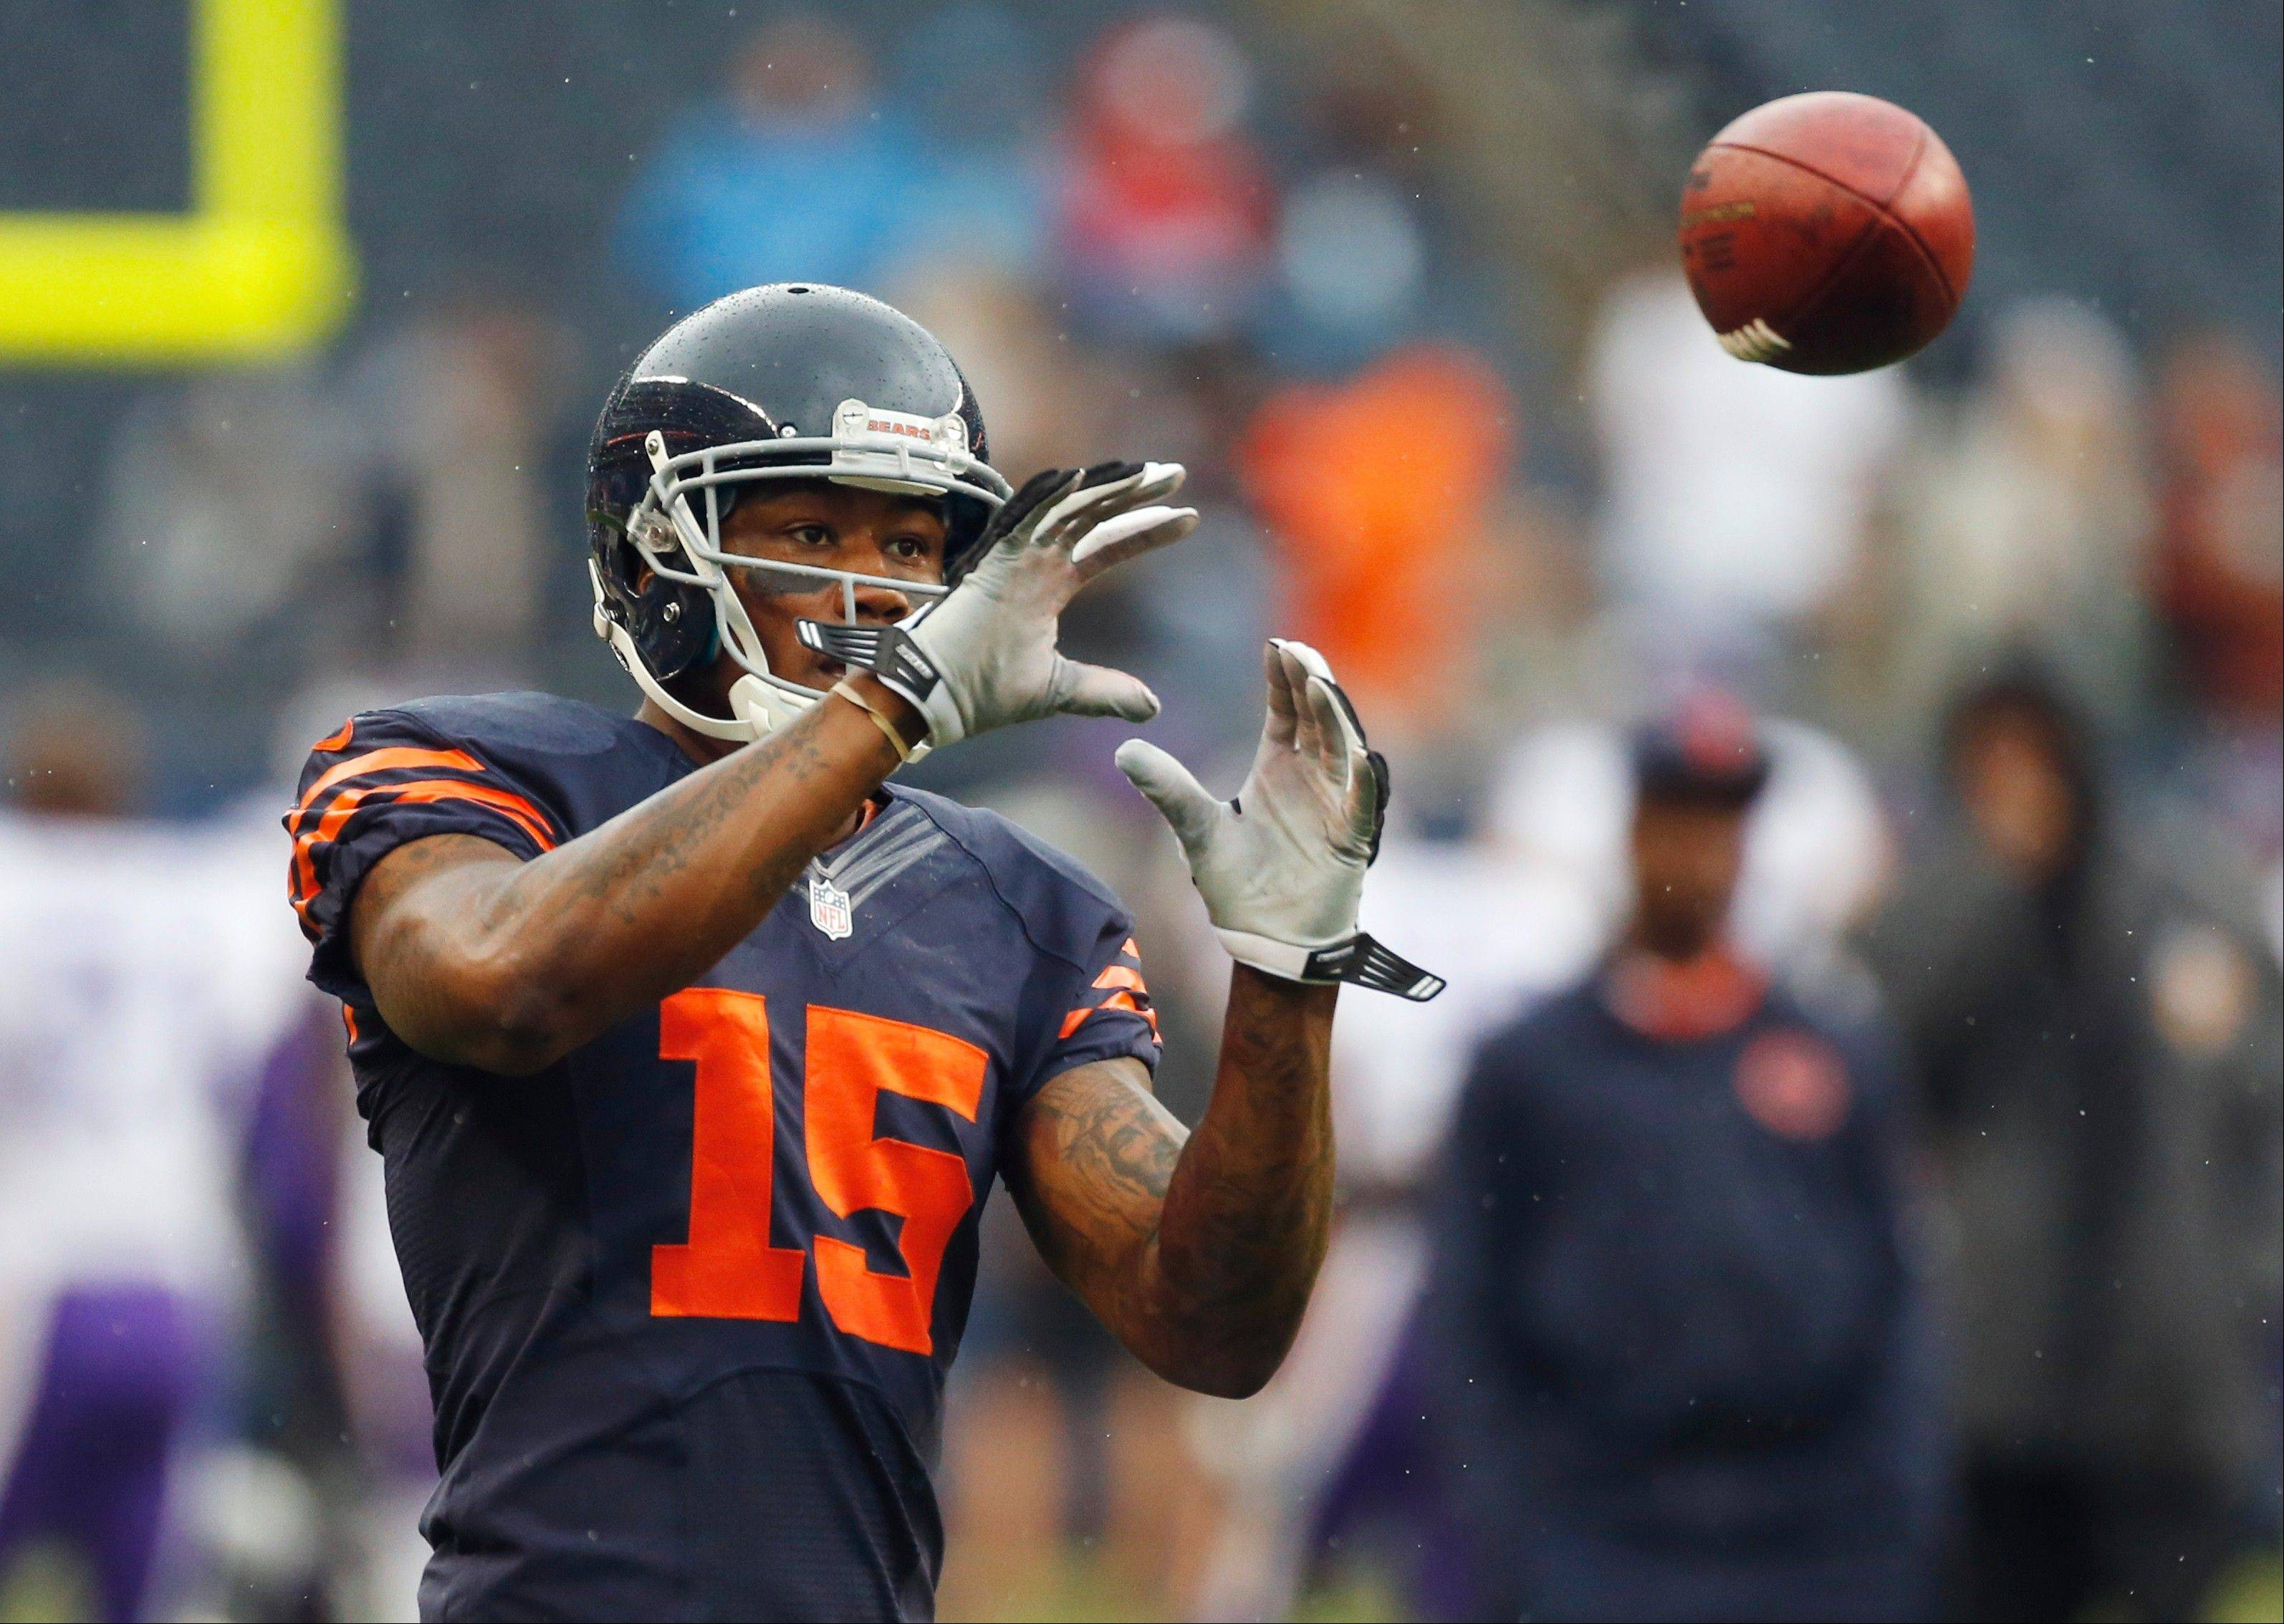 Chicago Bears wide receiver Brandon Marshall catches a pass during warm-ups before an NFL football game against the Minnesota Vikings, Sunday, Sept. 15, 2013, in Chicago.